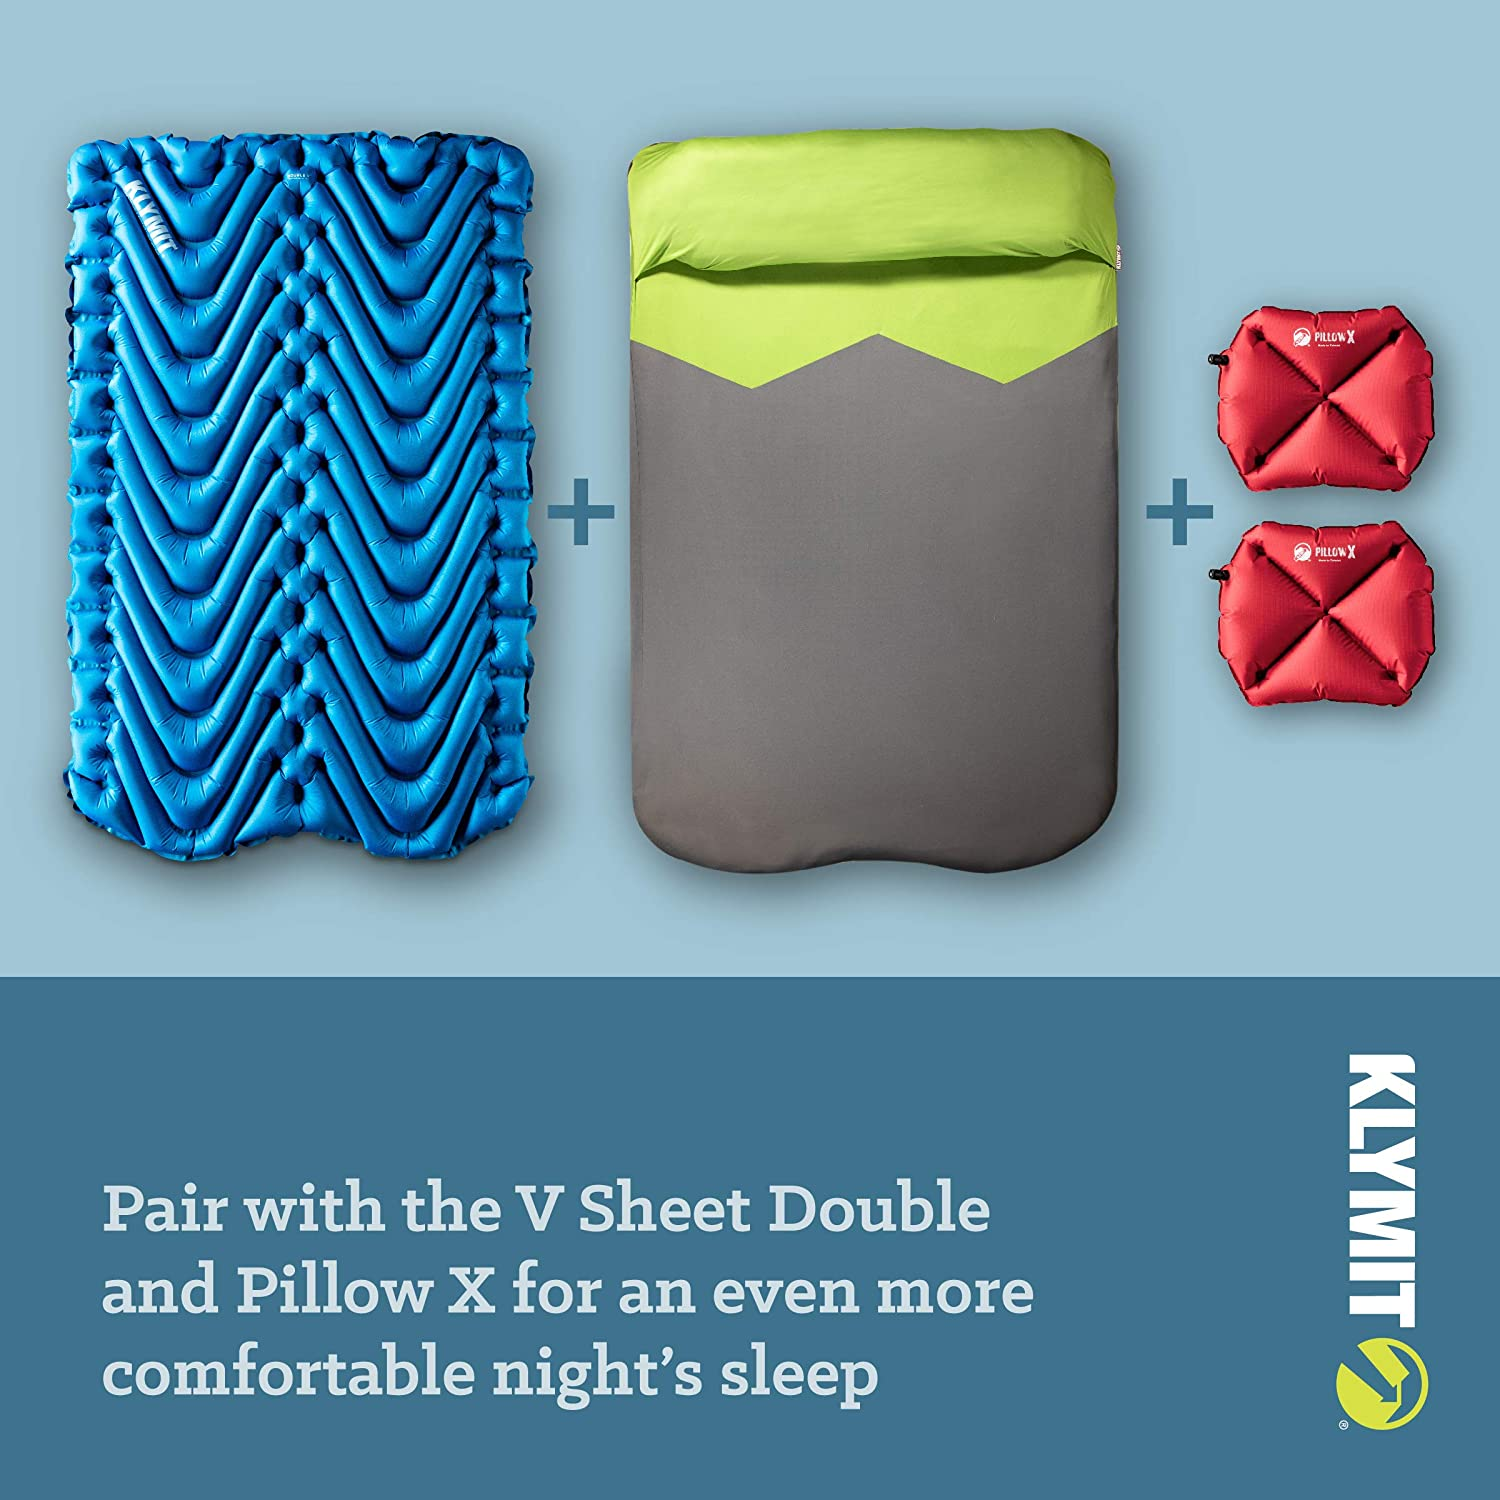 Two Person Tents and Backpacking 47 inches KLYMIT Double V Sleeping Pad Double Wide 2 Person Travel Lightweight Comfort for Car Camping